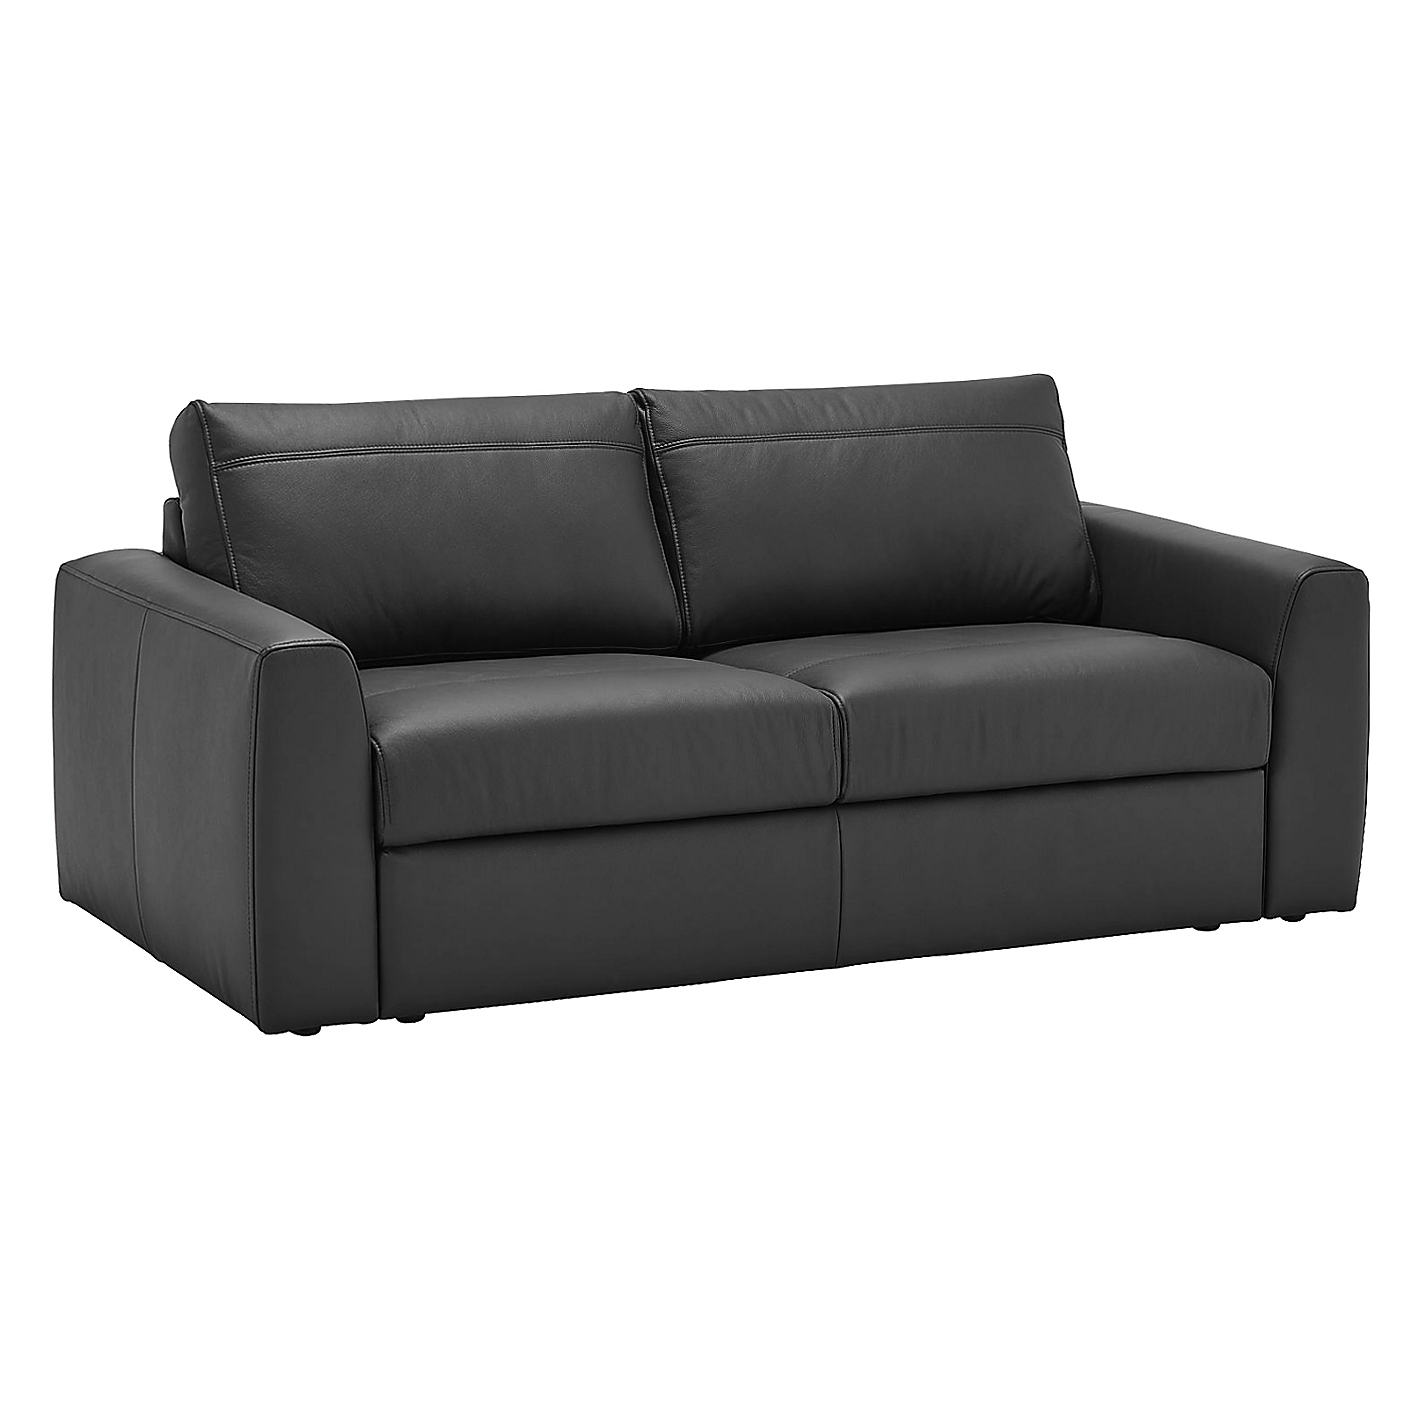 Sofa beds john lewis clearance infosofaco for Sofa beds clearance